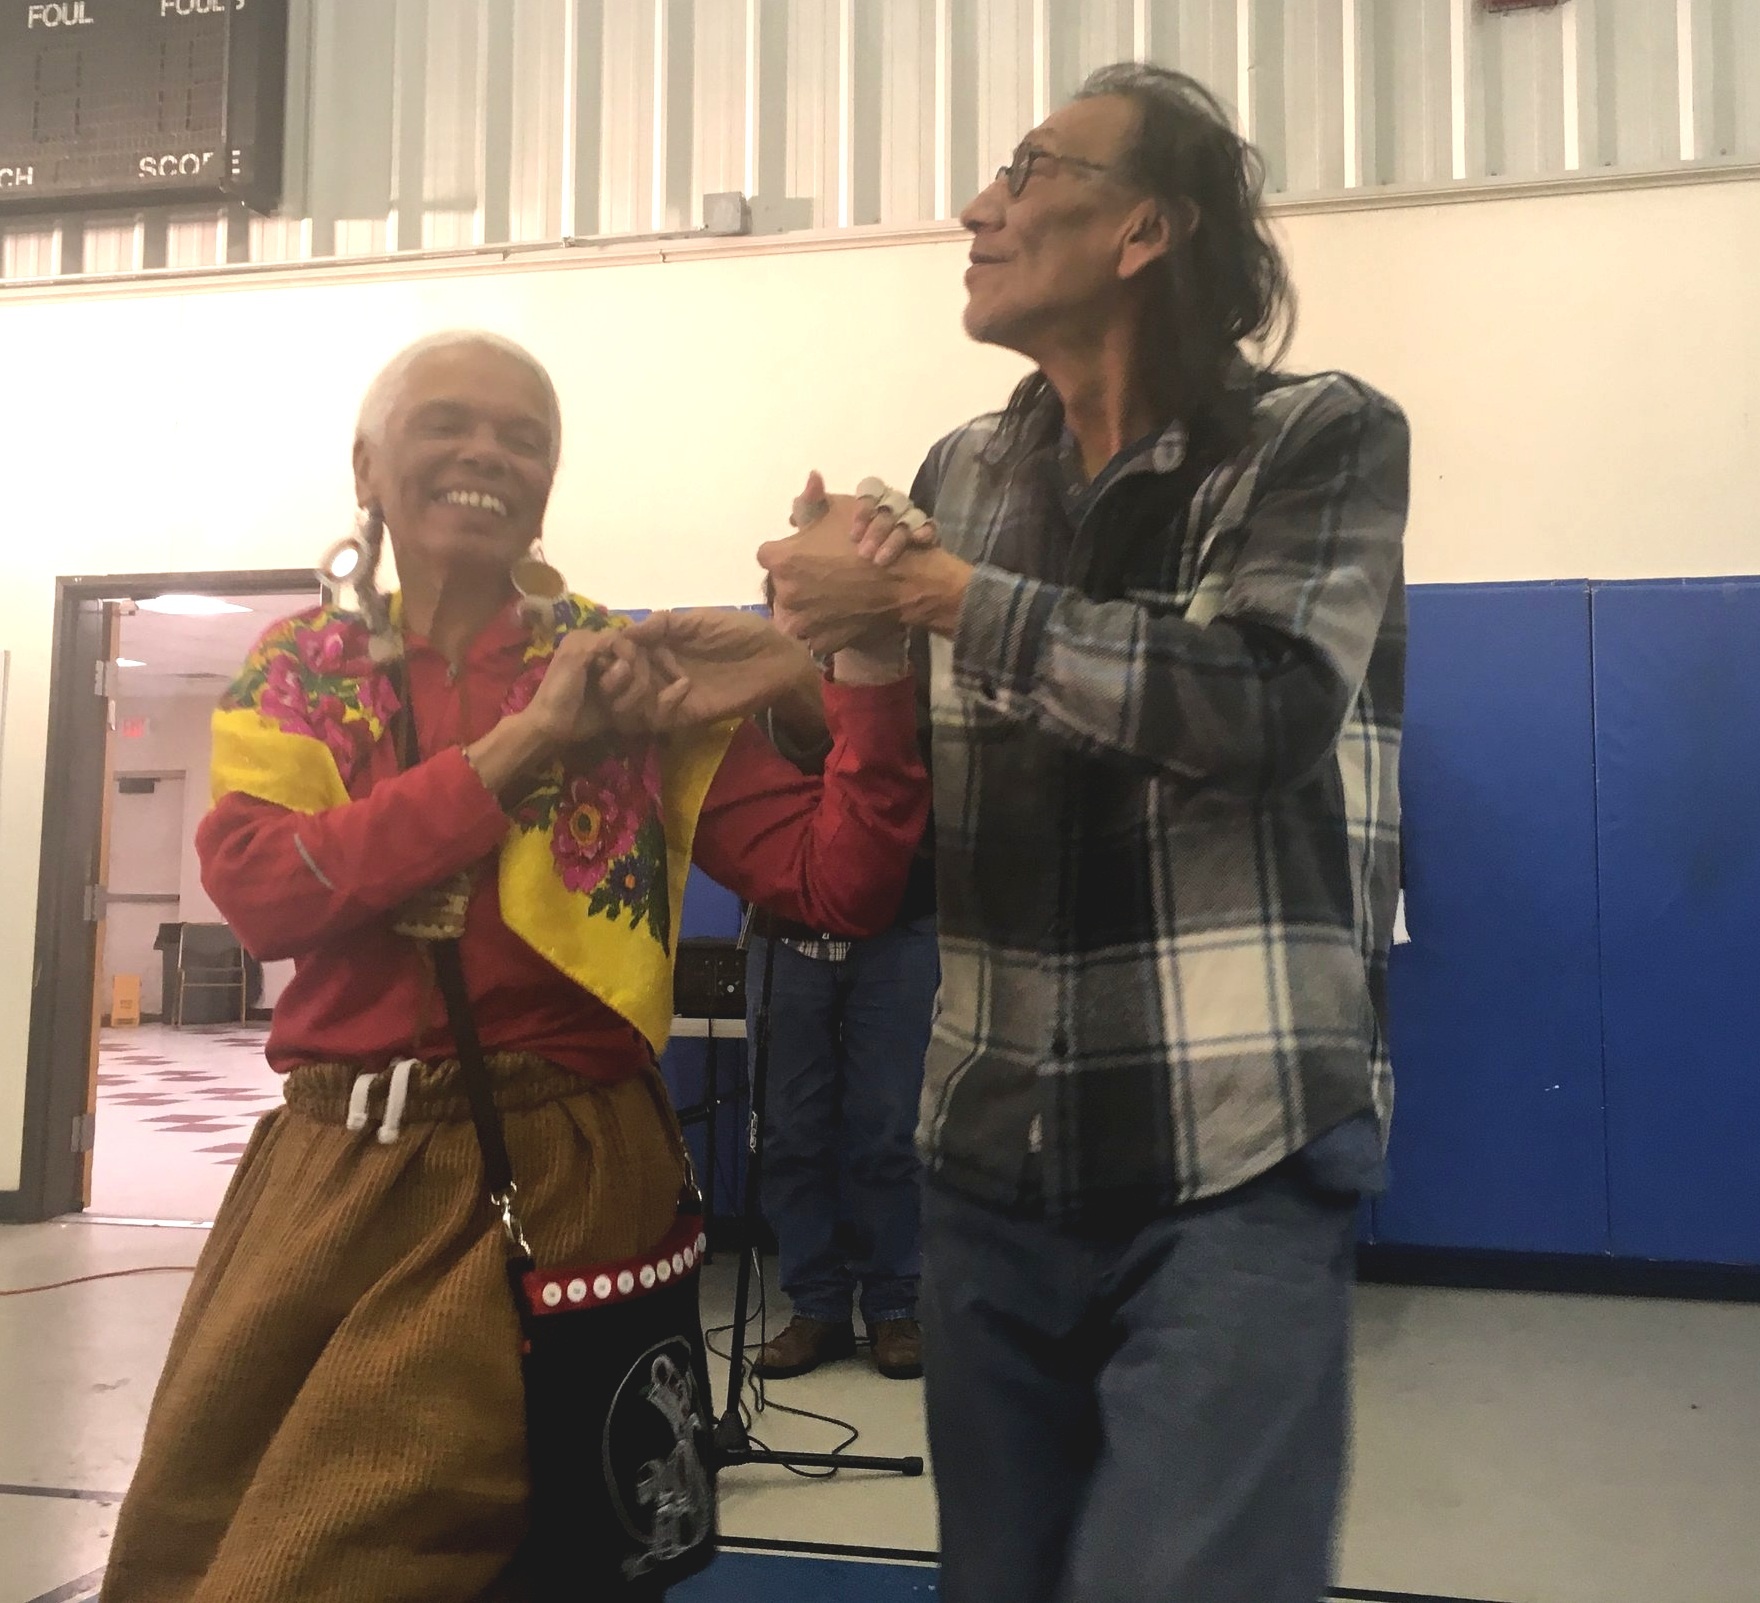 Nathan Phillips dancing with Carolyn Christmas, Mi'kmaq, during a break from the Standing Rock prayer walk in February 2018. By Rebecca Bengal